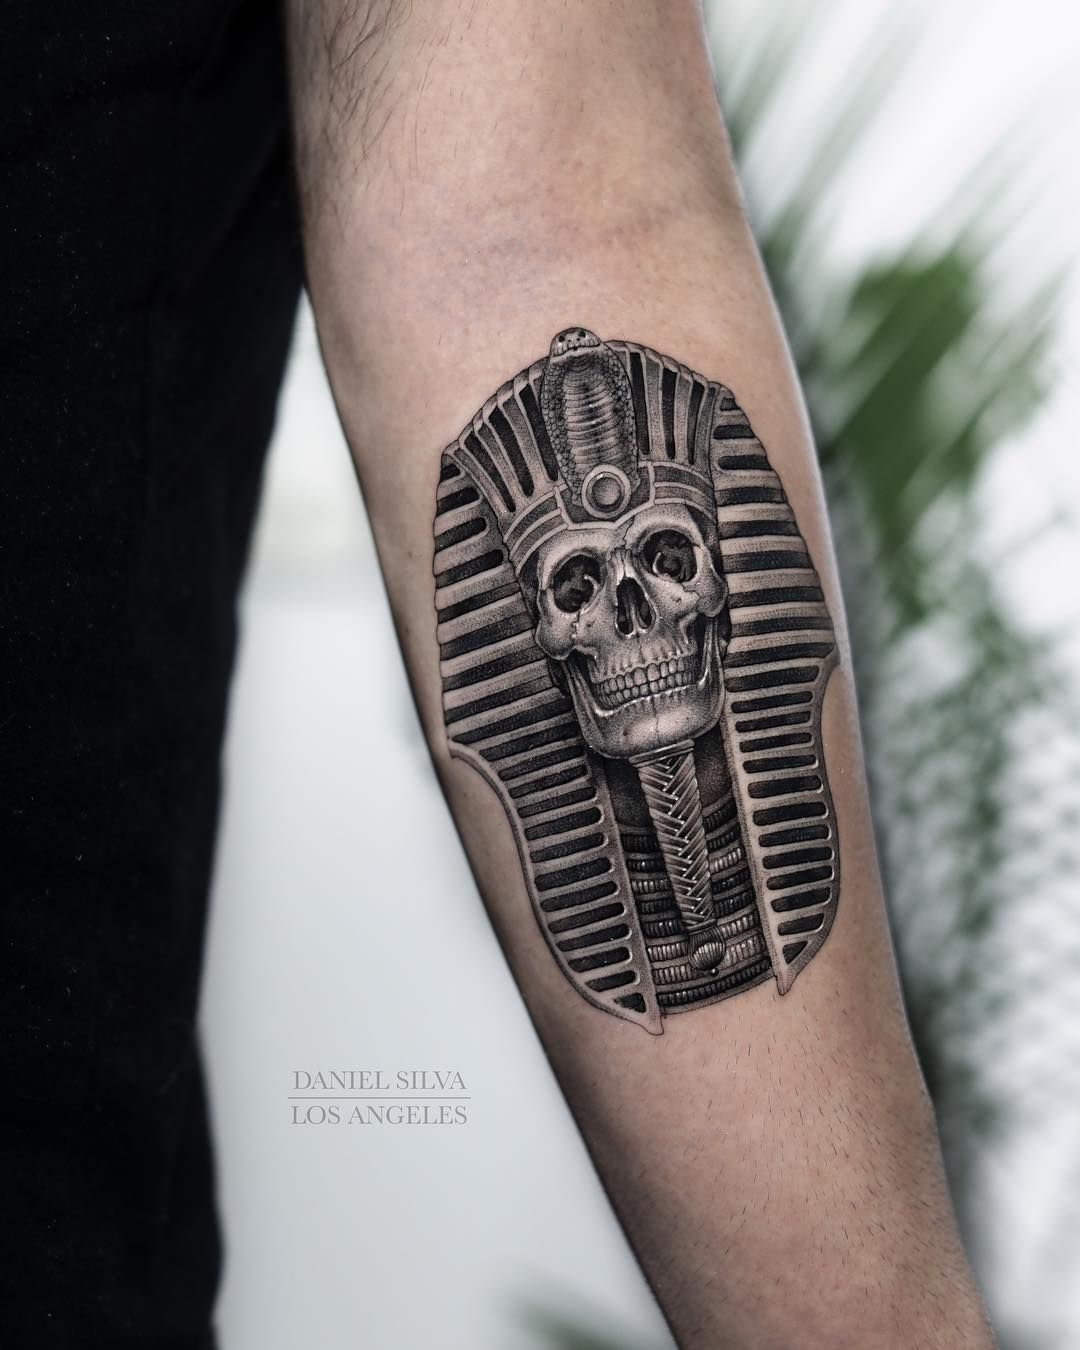 Egyptian Skull Tattoo Tattoo Ideas And Inspiration Skull Tattoo Tattoos Arm Tattoo